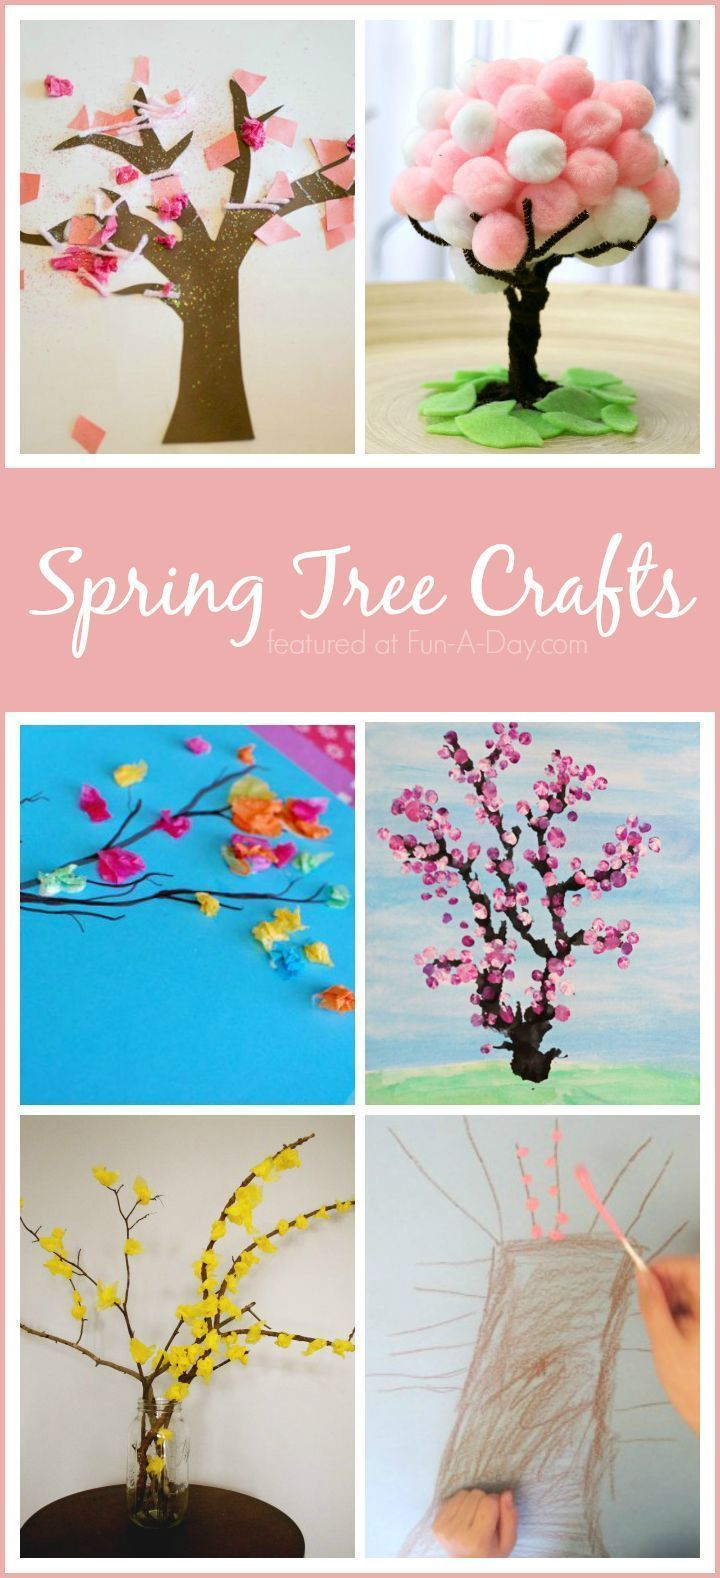 10 spring crafts for preschoolers to make - all about spring trees